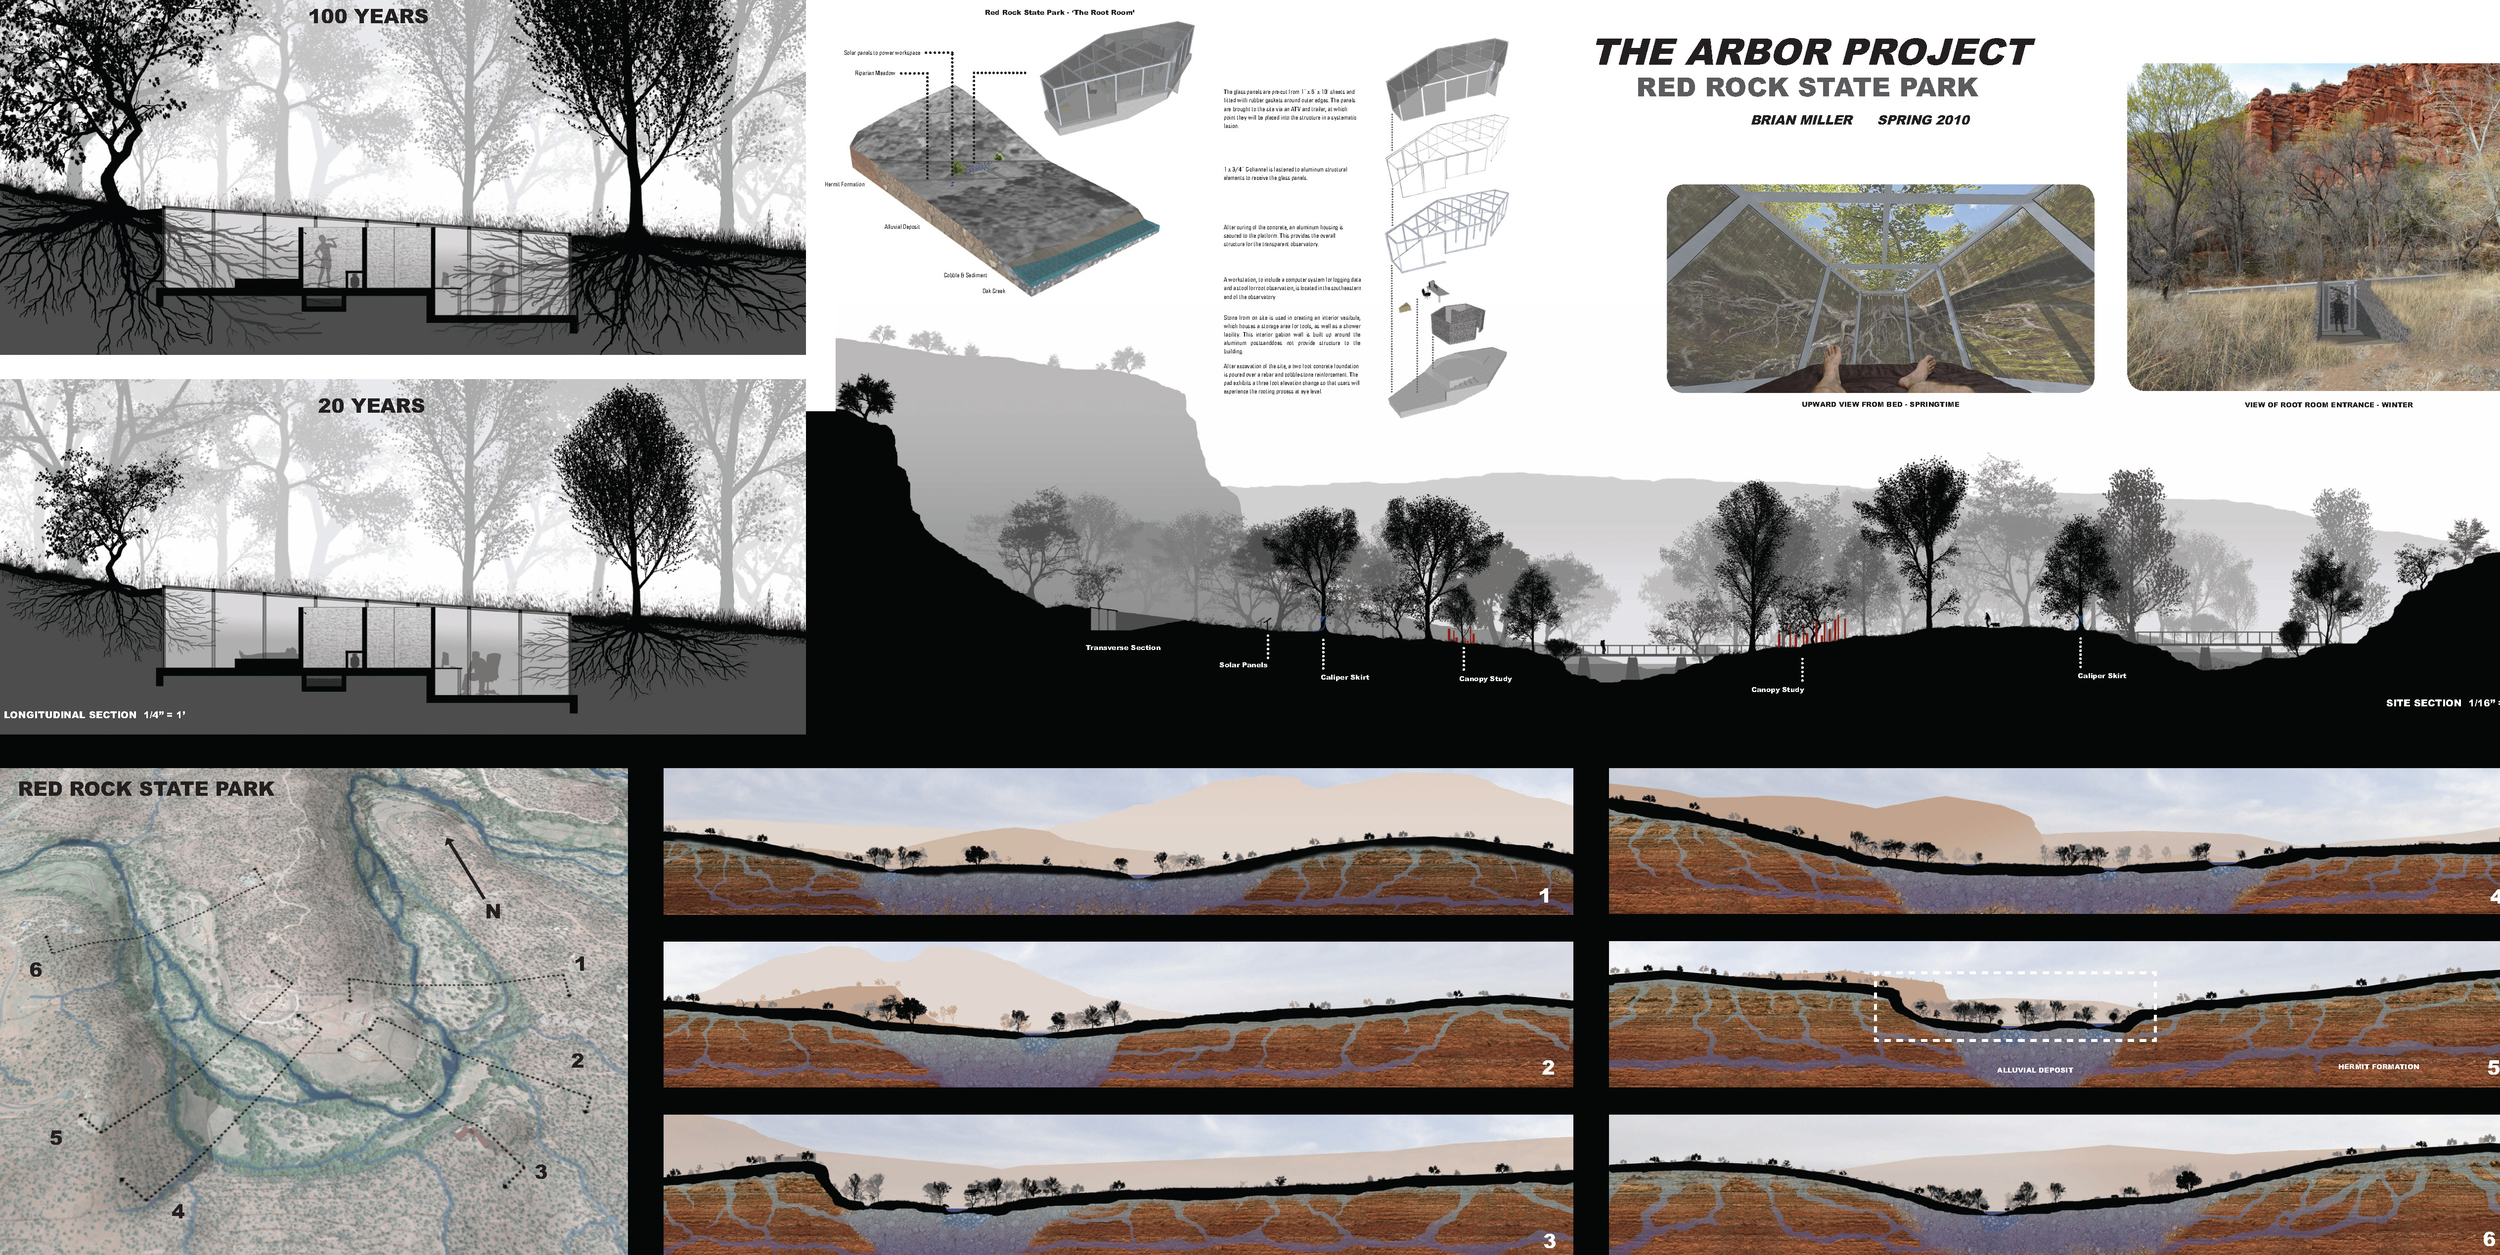 Brian Miller's observatory uses the trees in the riparian areas as indicators of ecological health. If they show certain habits throughout the years, the water supply is good. (click image to see bigger)